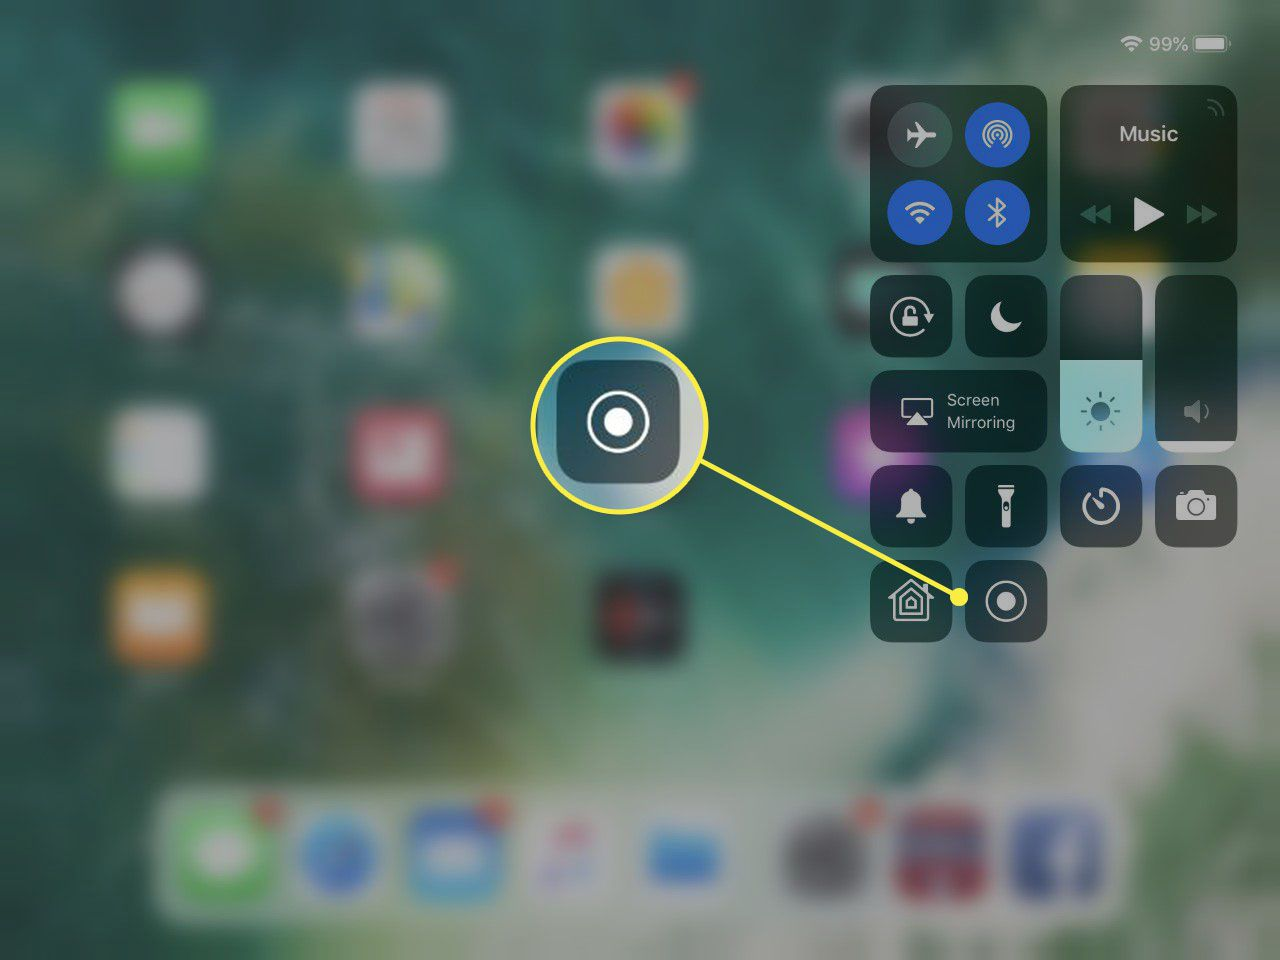 iPad Control Center with the Screen Recording button added.